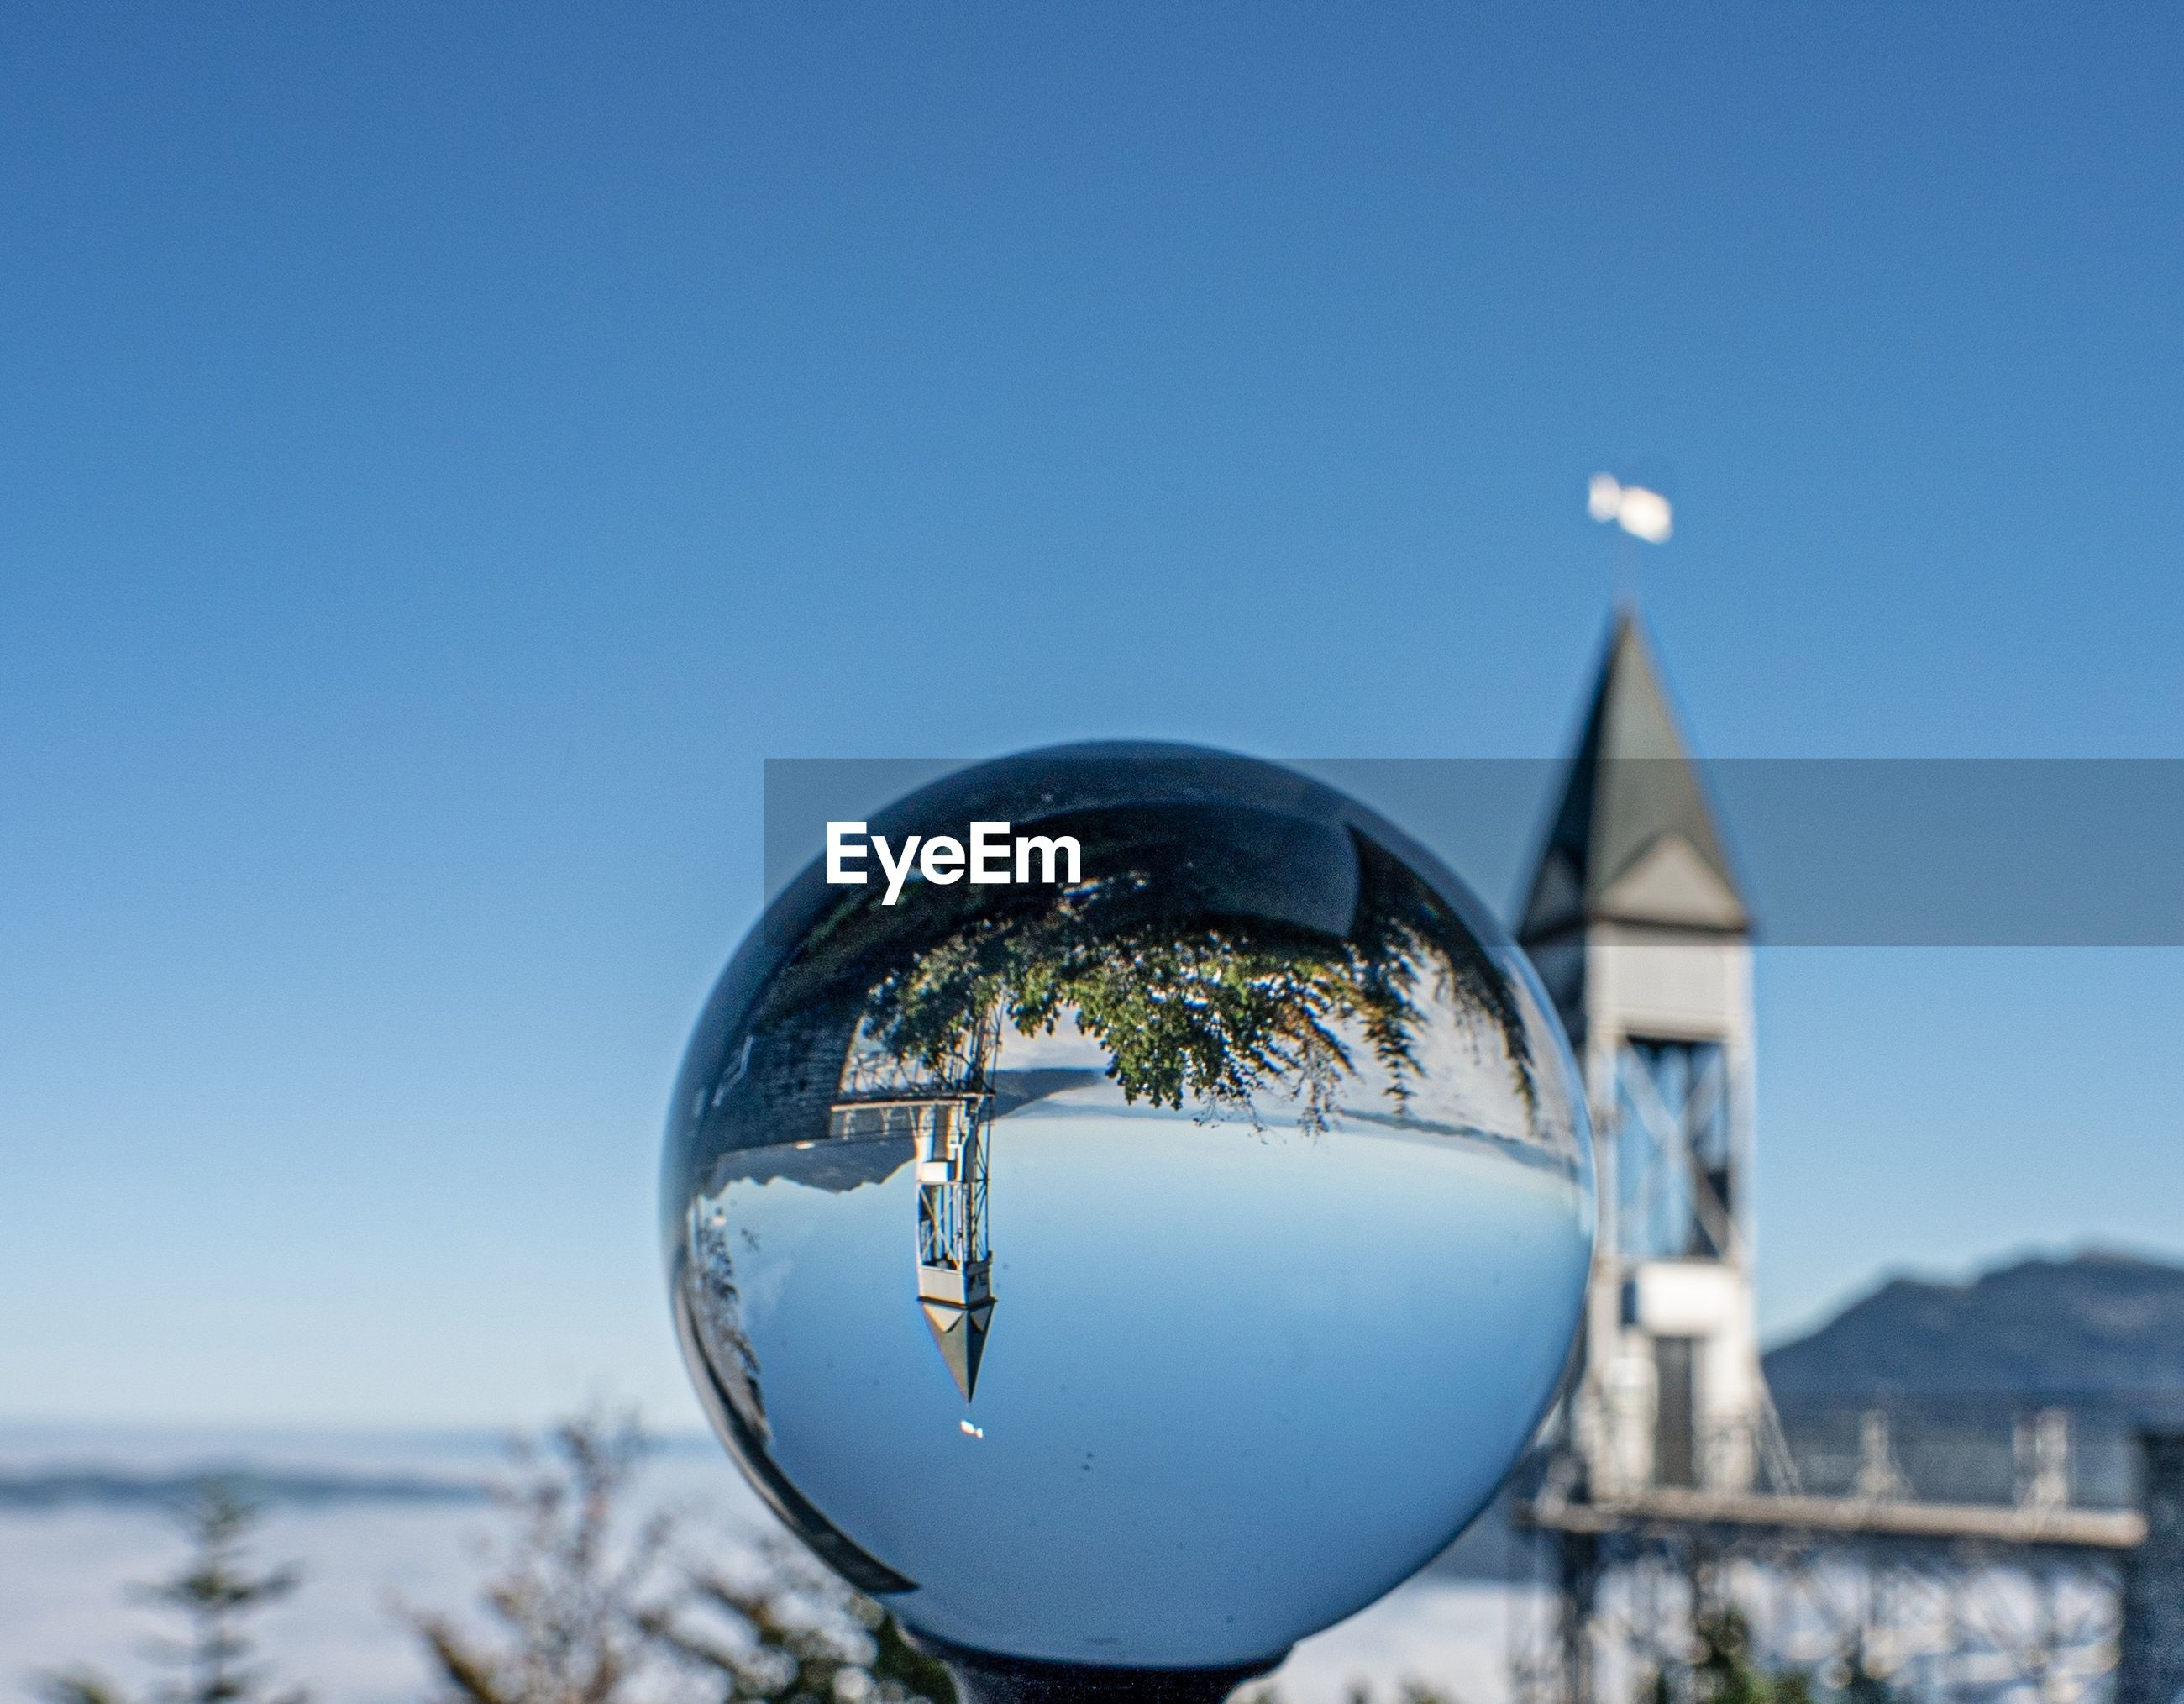 CLOSE-UP OF CRYSTAL BALL AGAINST BLUE SKY WITH REFLECTION